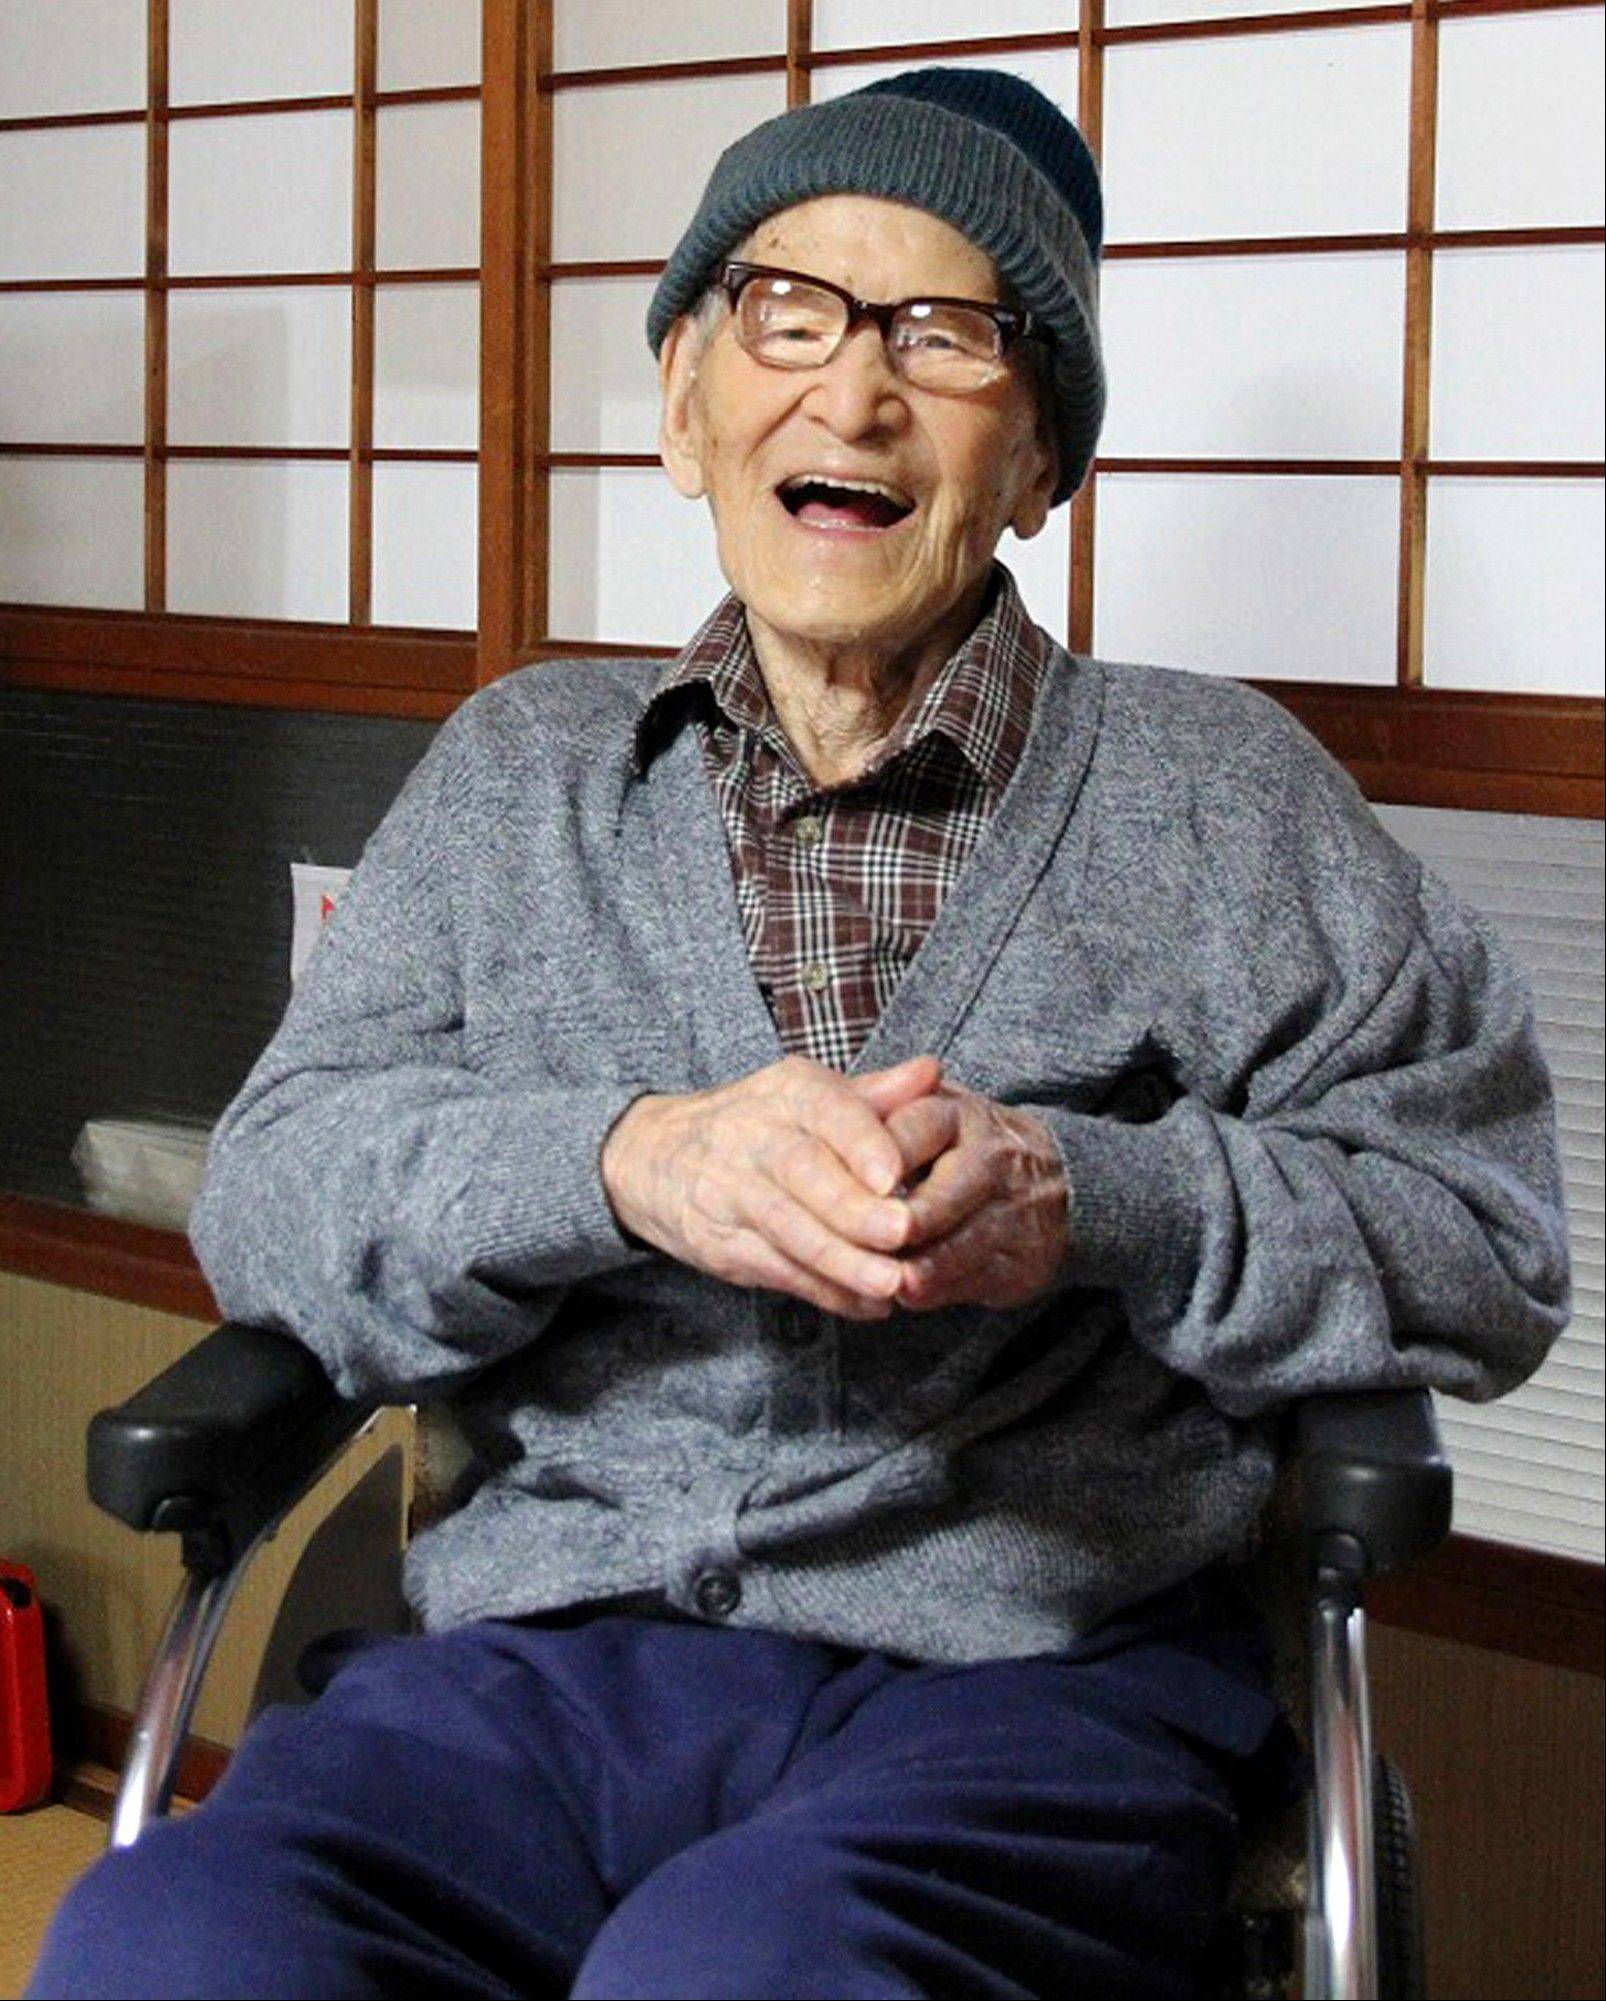 Jiroemon Kimura smiles after he was presented with the certificate of the world�s oldest living man from Guinness World Records.